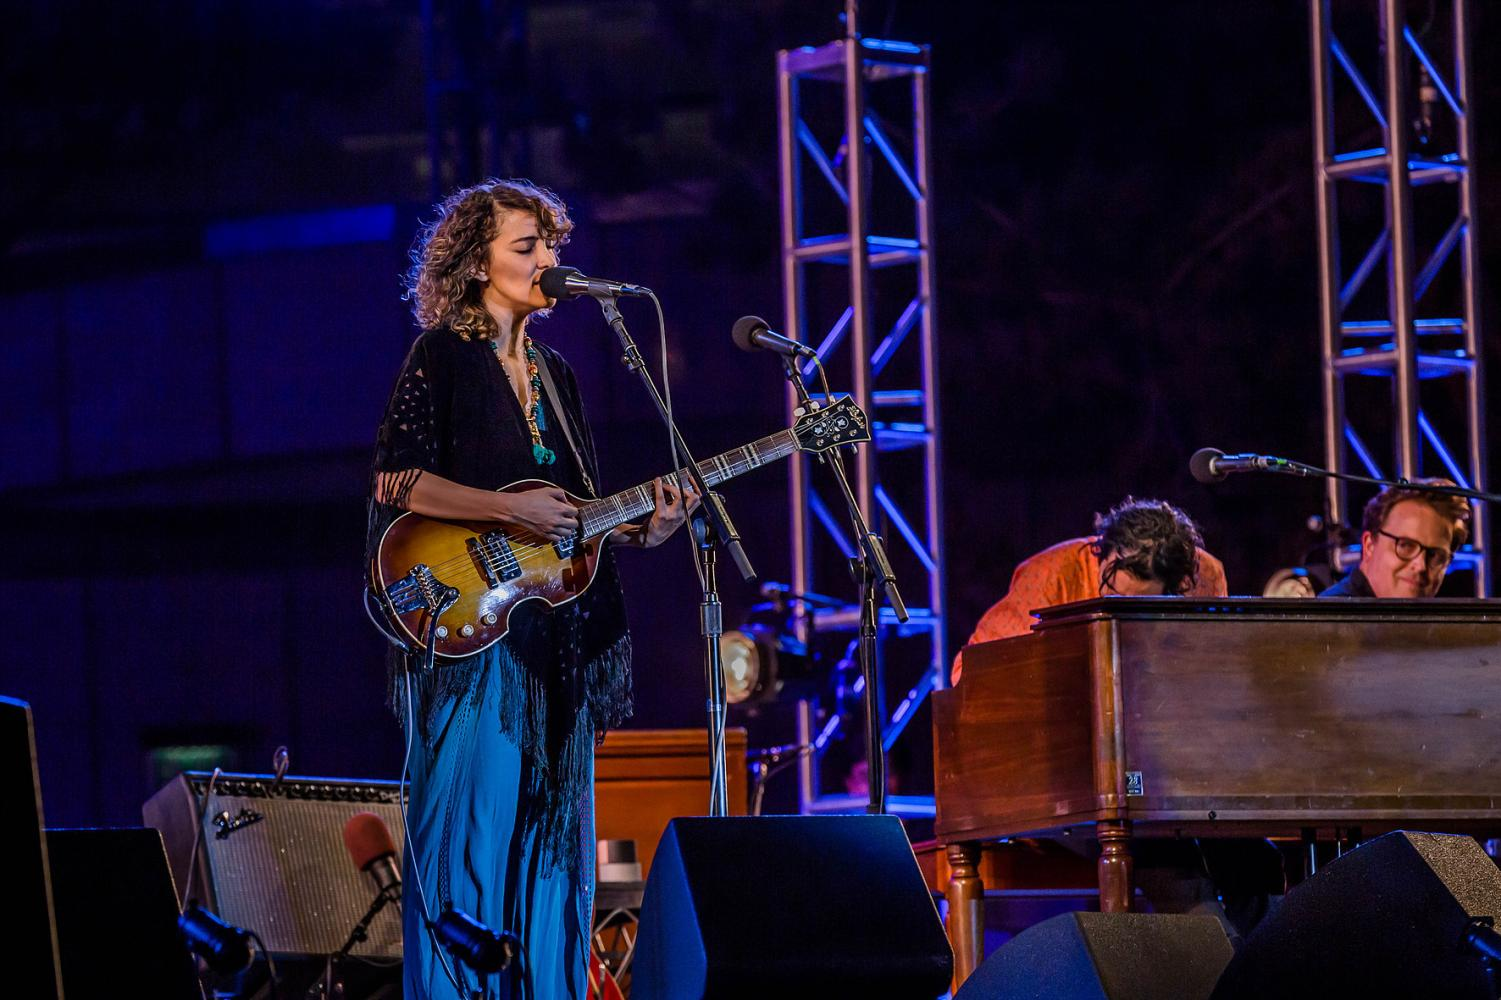 Gaby Moreno's music is strongly influenced by Blues and Jazz. Her love for